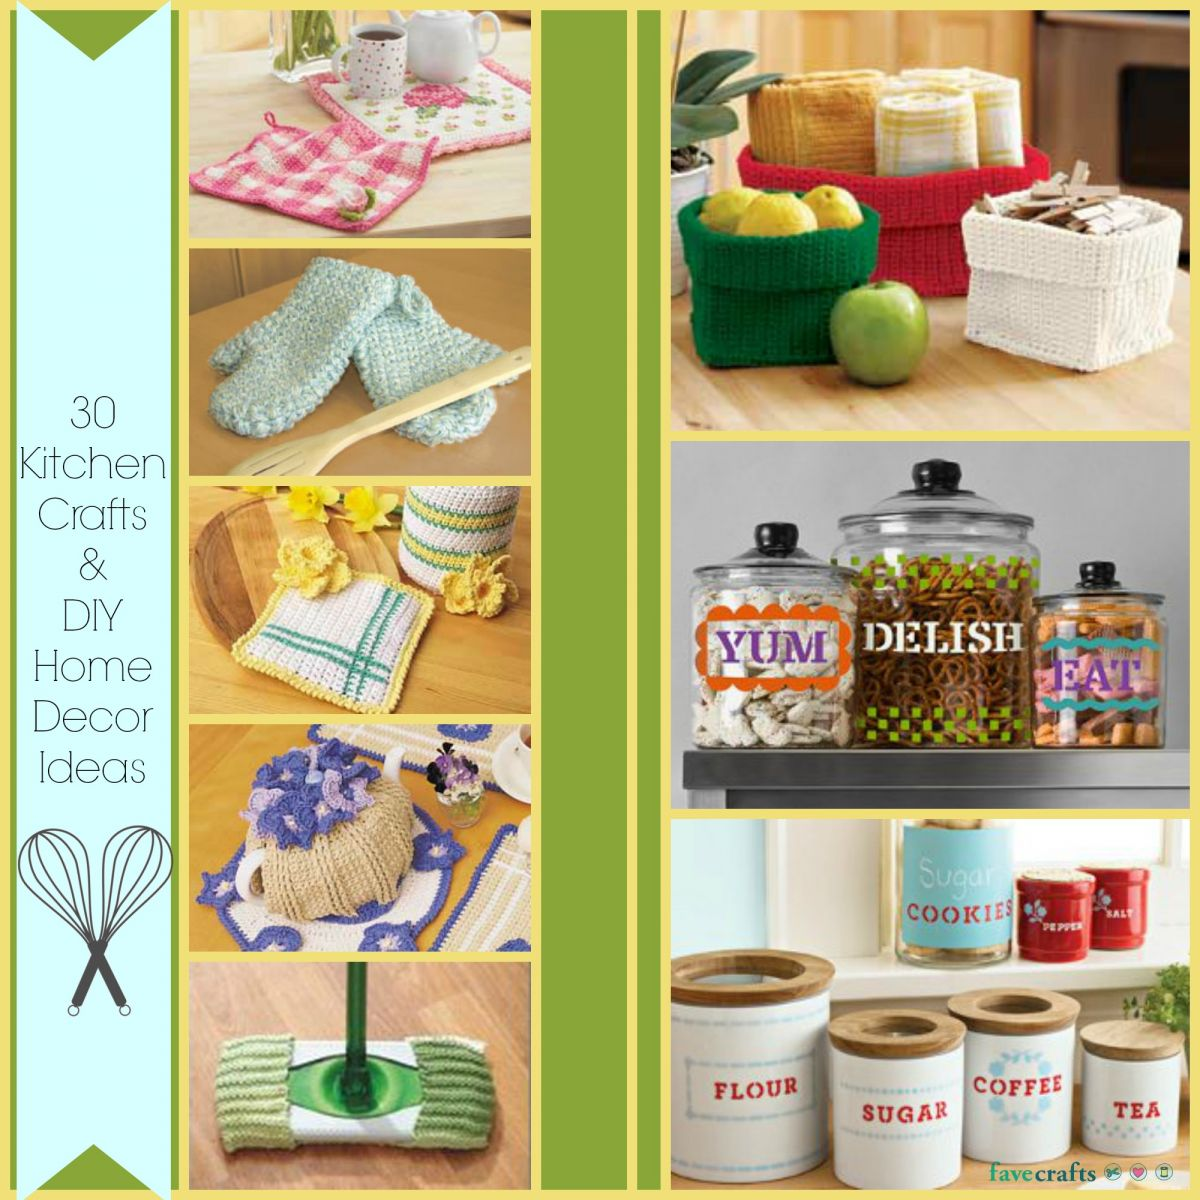 30 kitchen crafts and diy home decor ideas for Home decor ideas at home